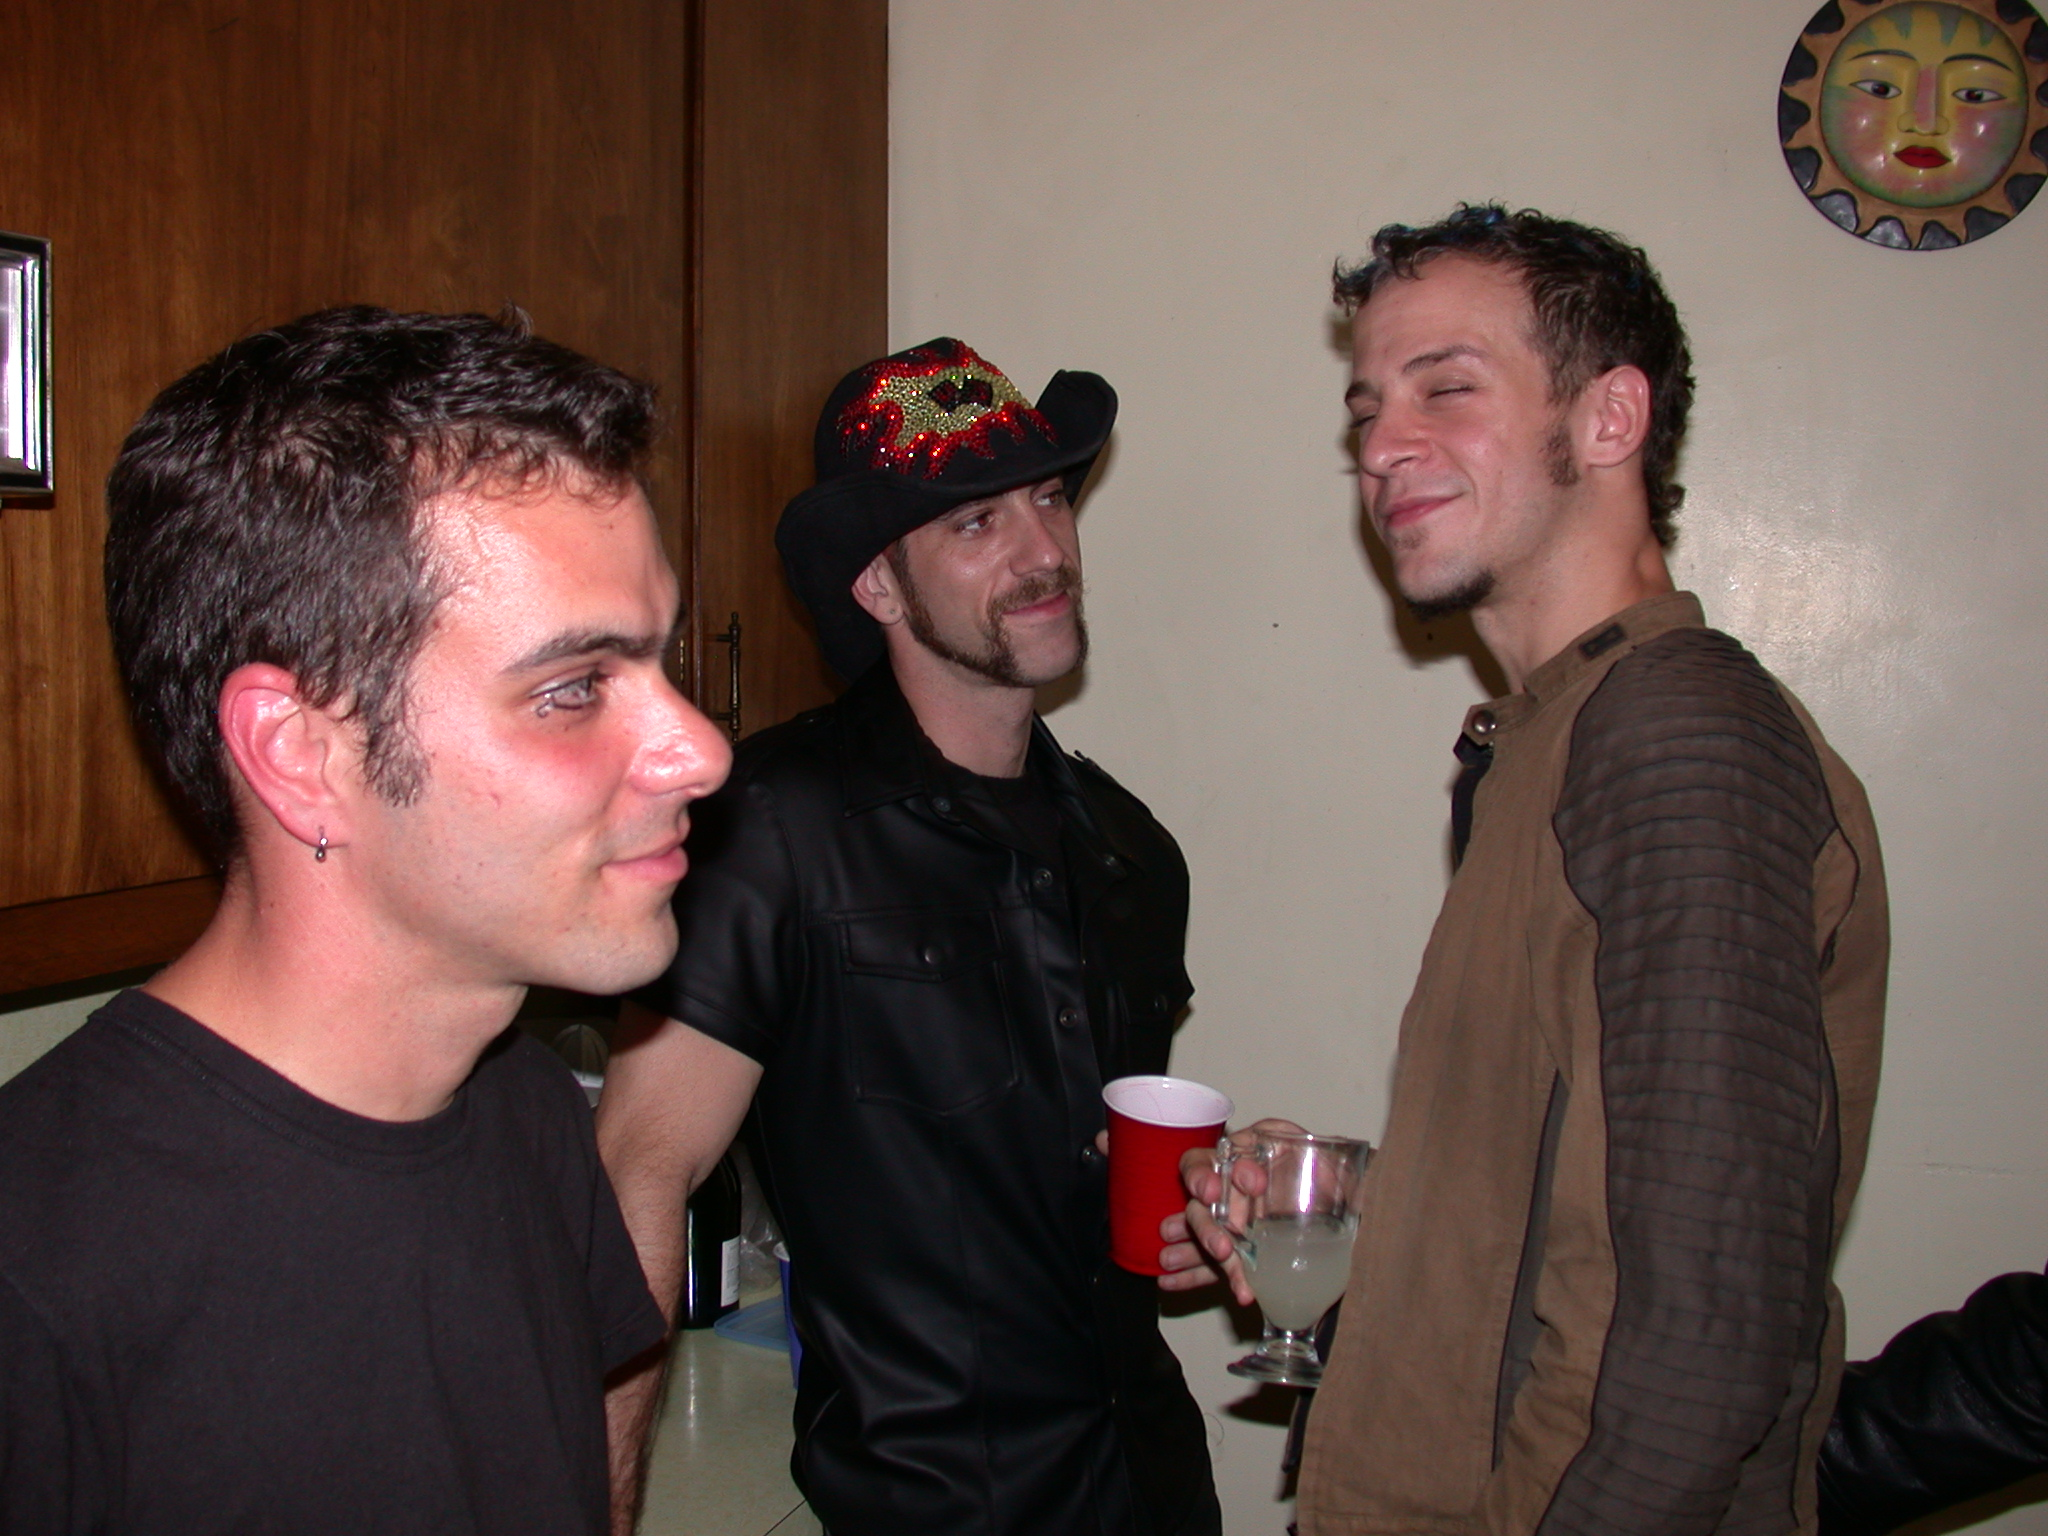 Giovanni, J.B., and Jesse